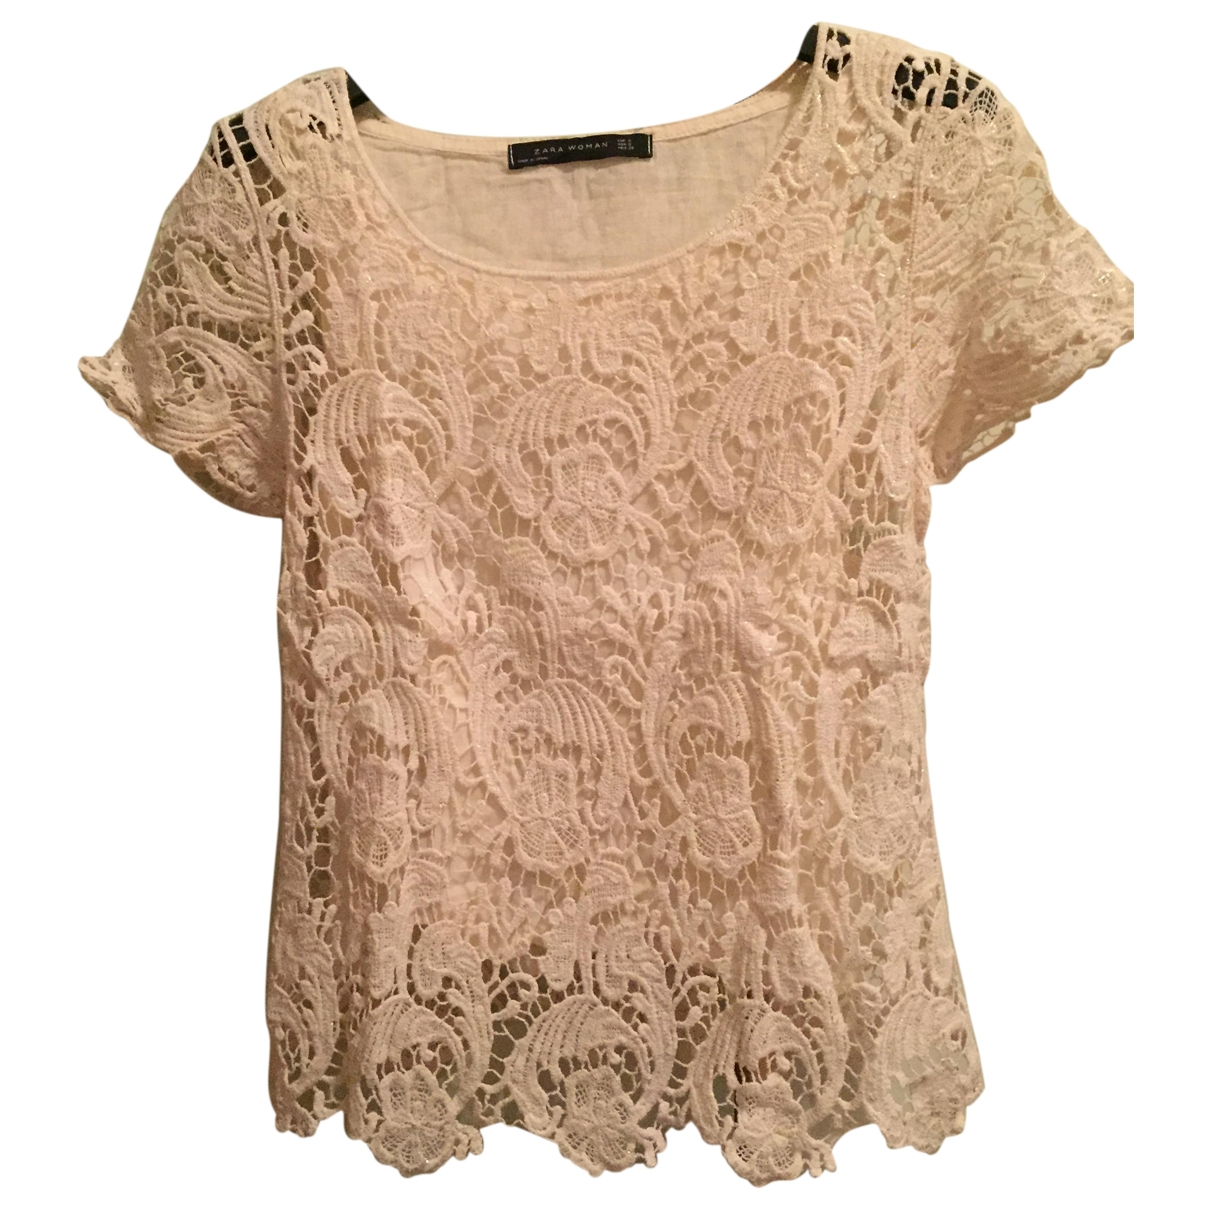 Zara \N Beige Cotton  top for Women S International